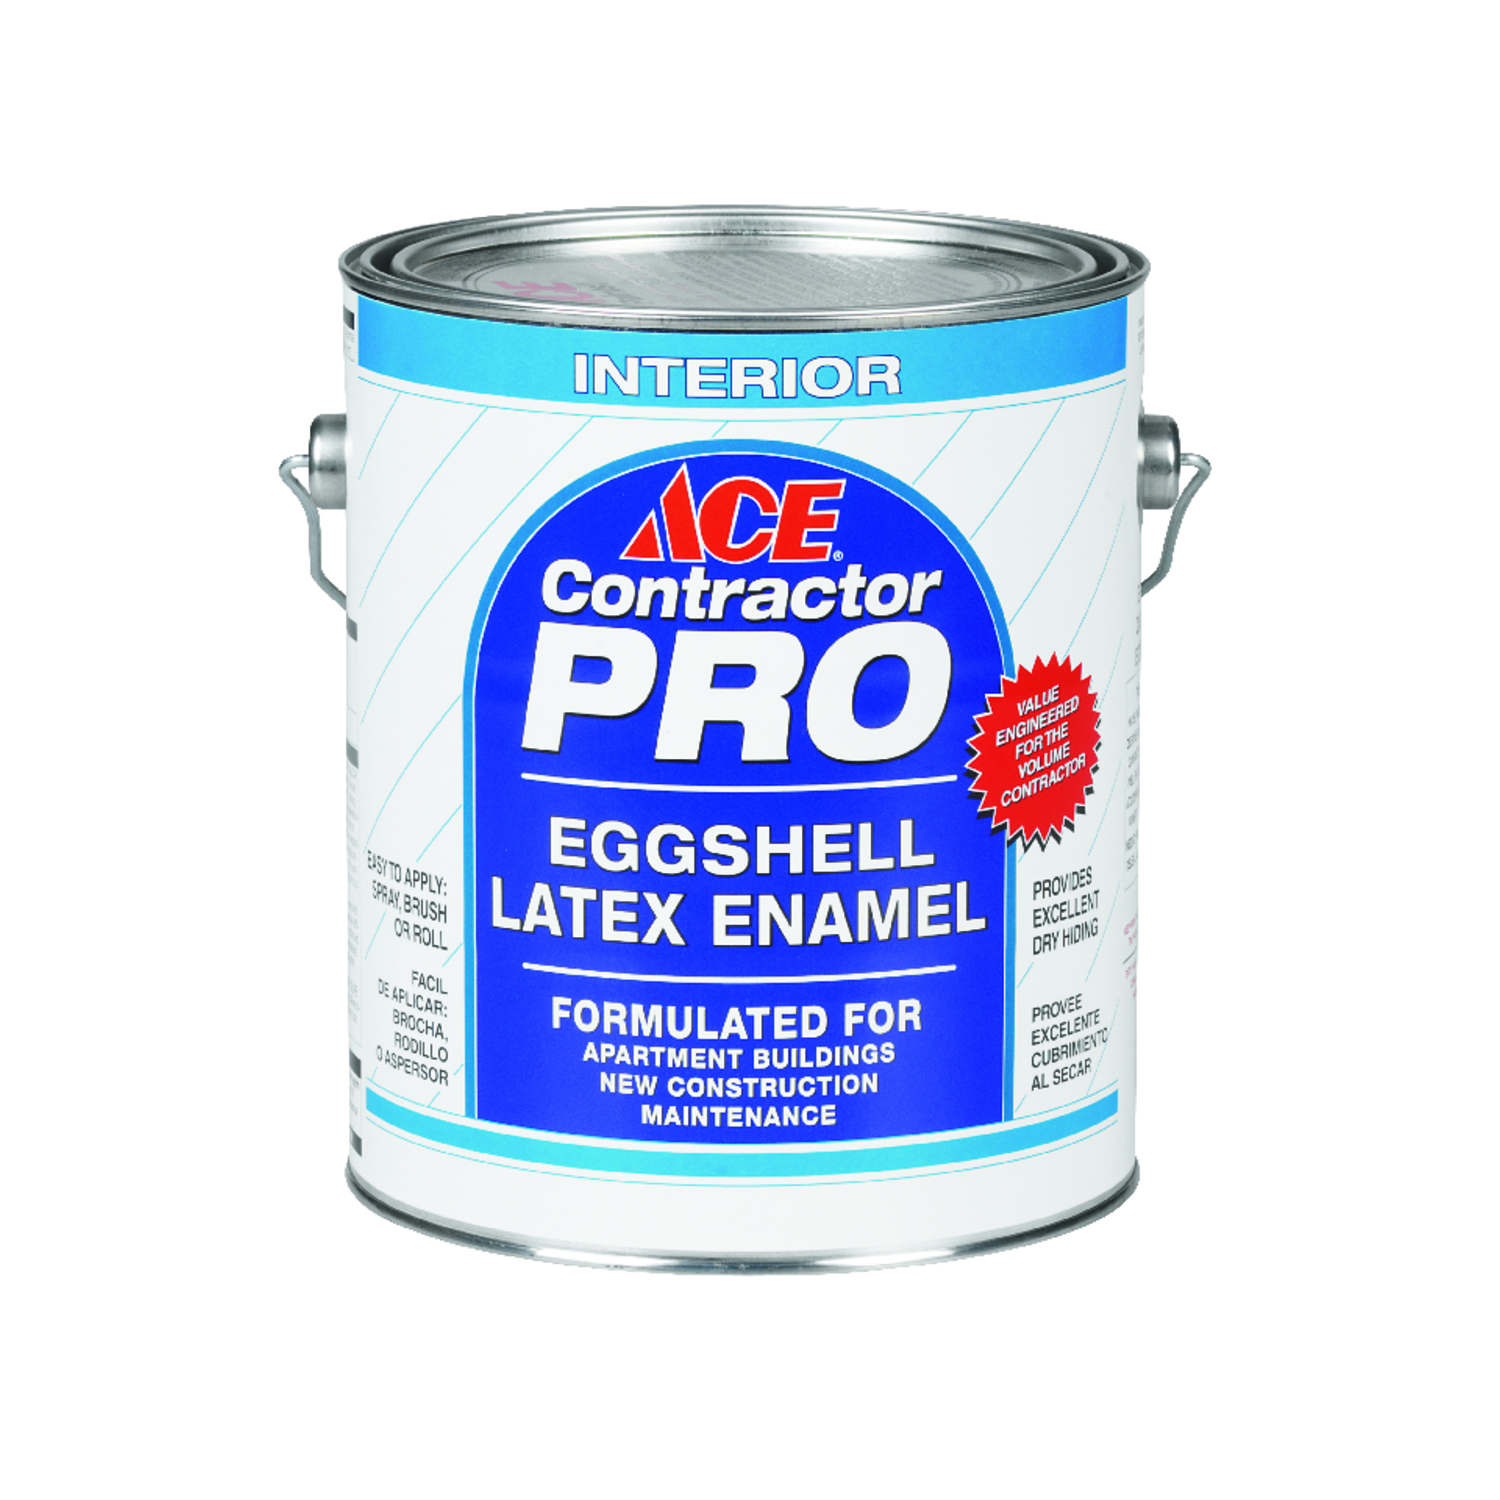 Ace  Contractor Pro  White  Tint Base  1 gal. House Paint  Eggshell